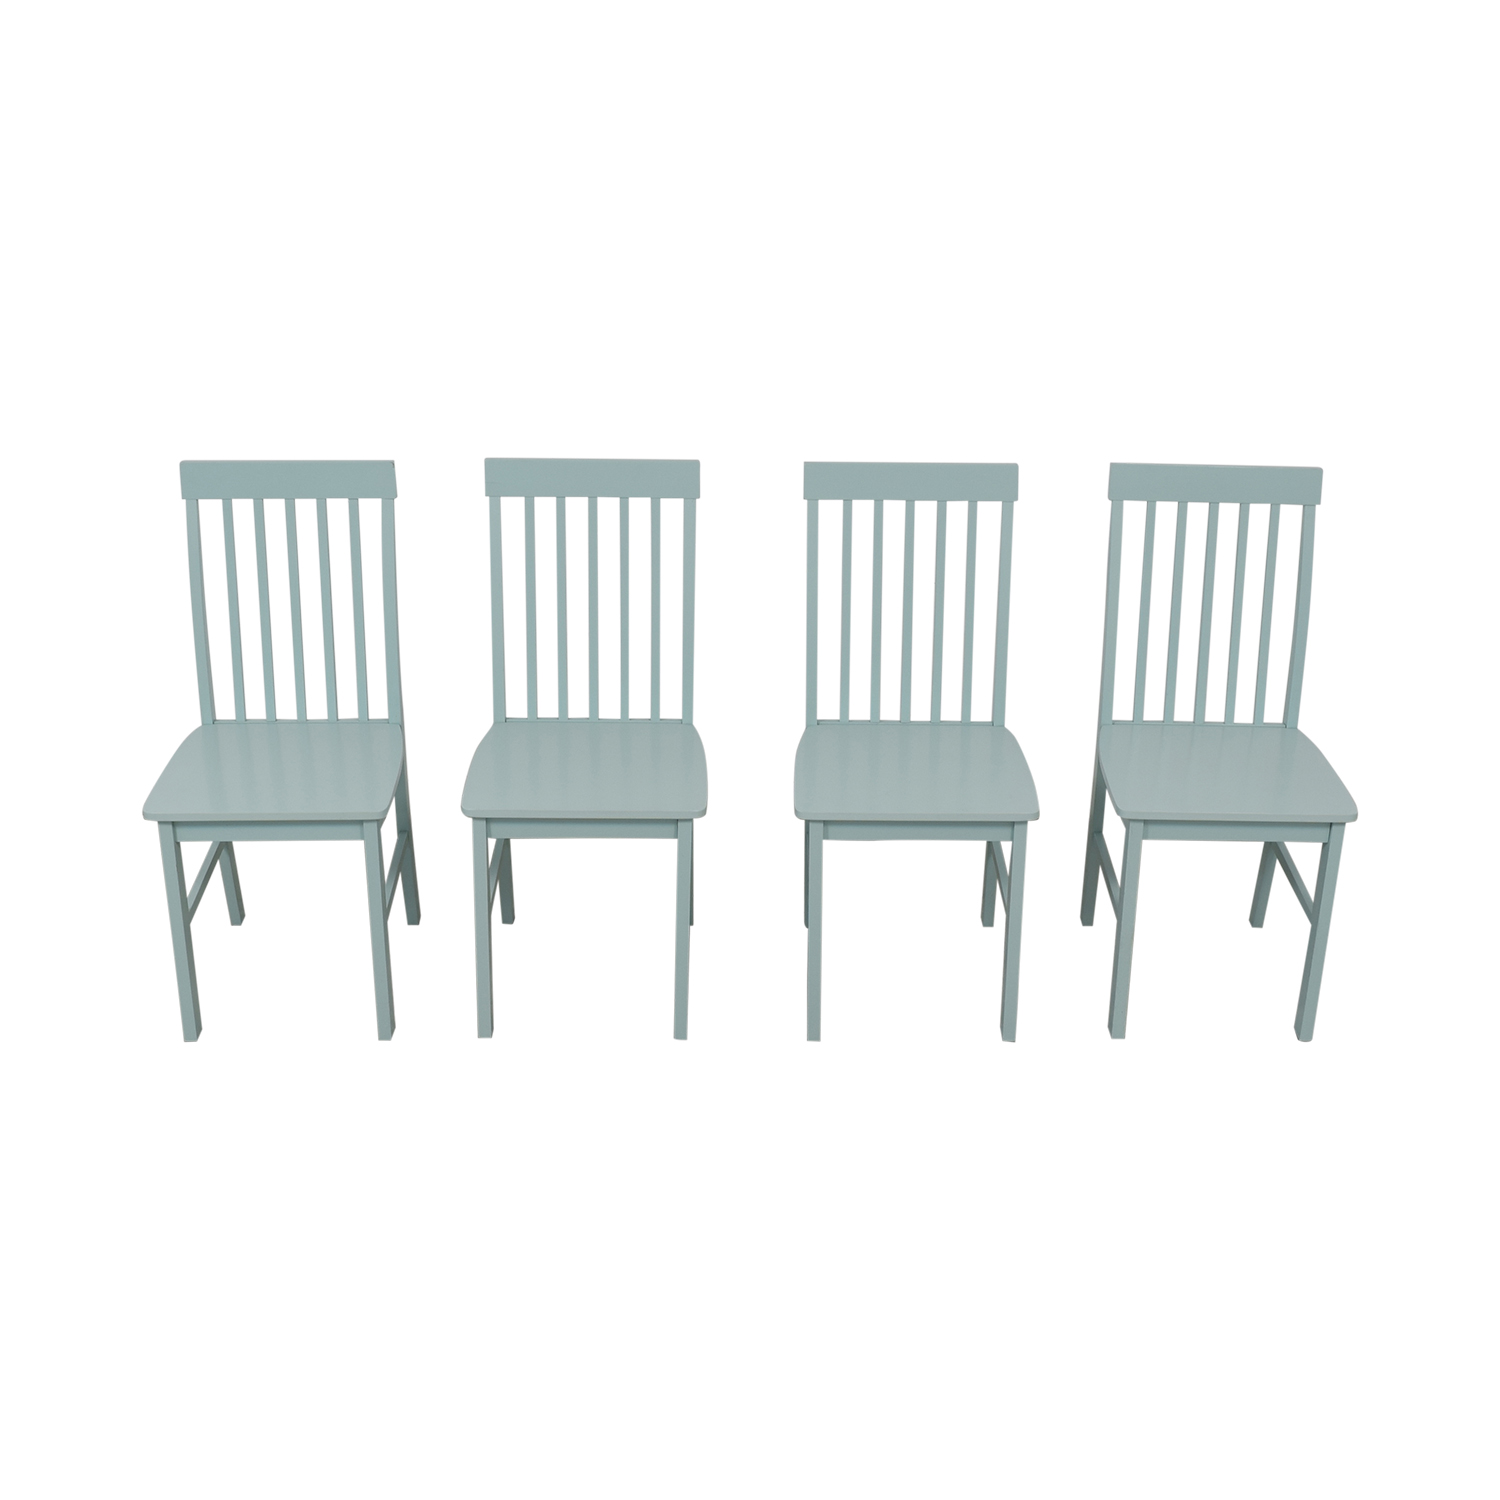 Light Blue Wood Chairs dimensions